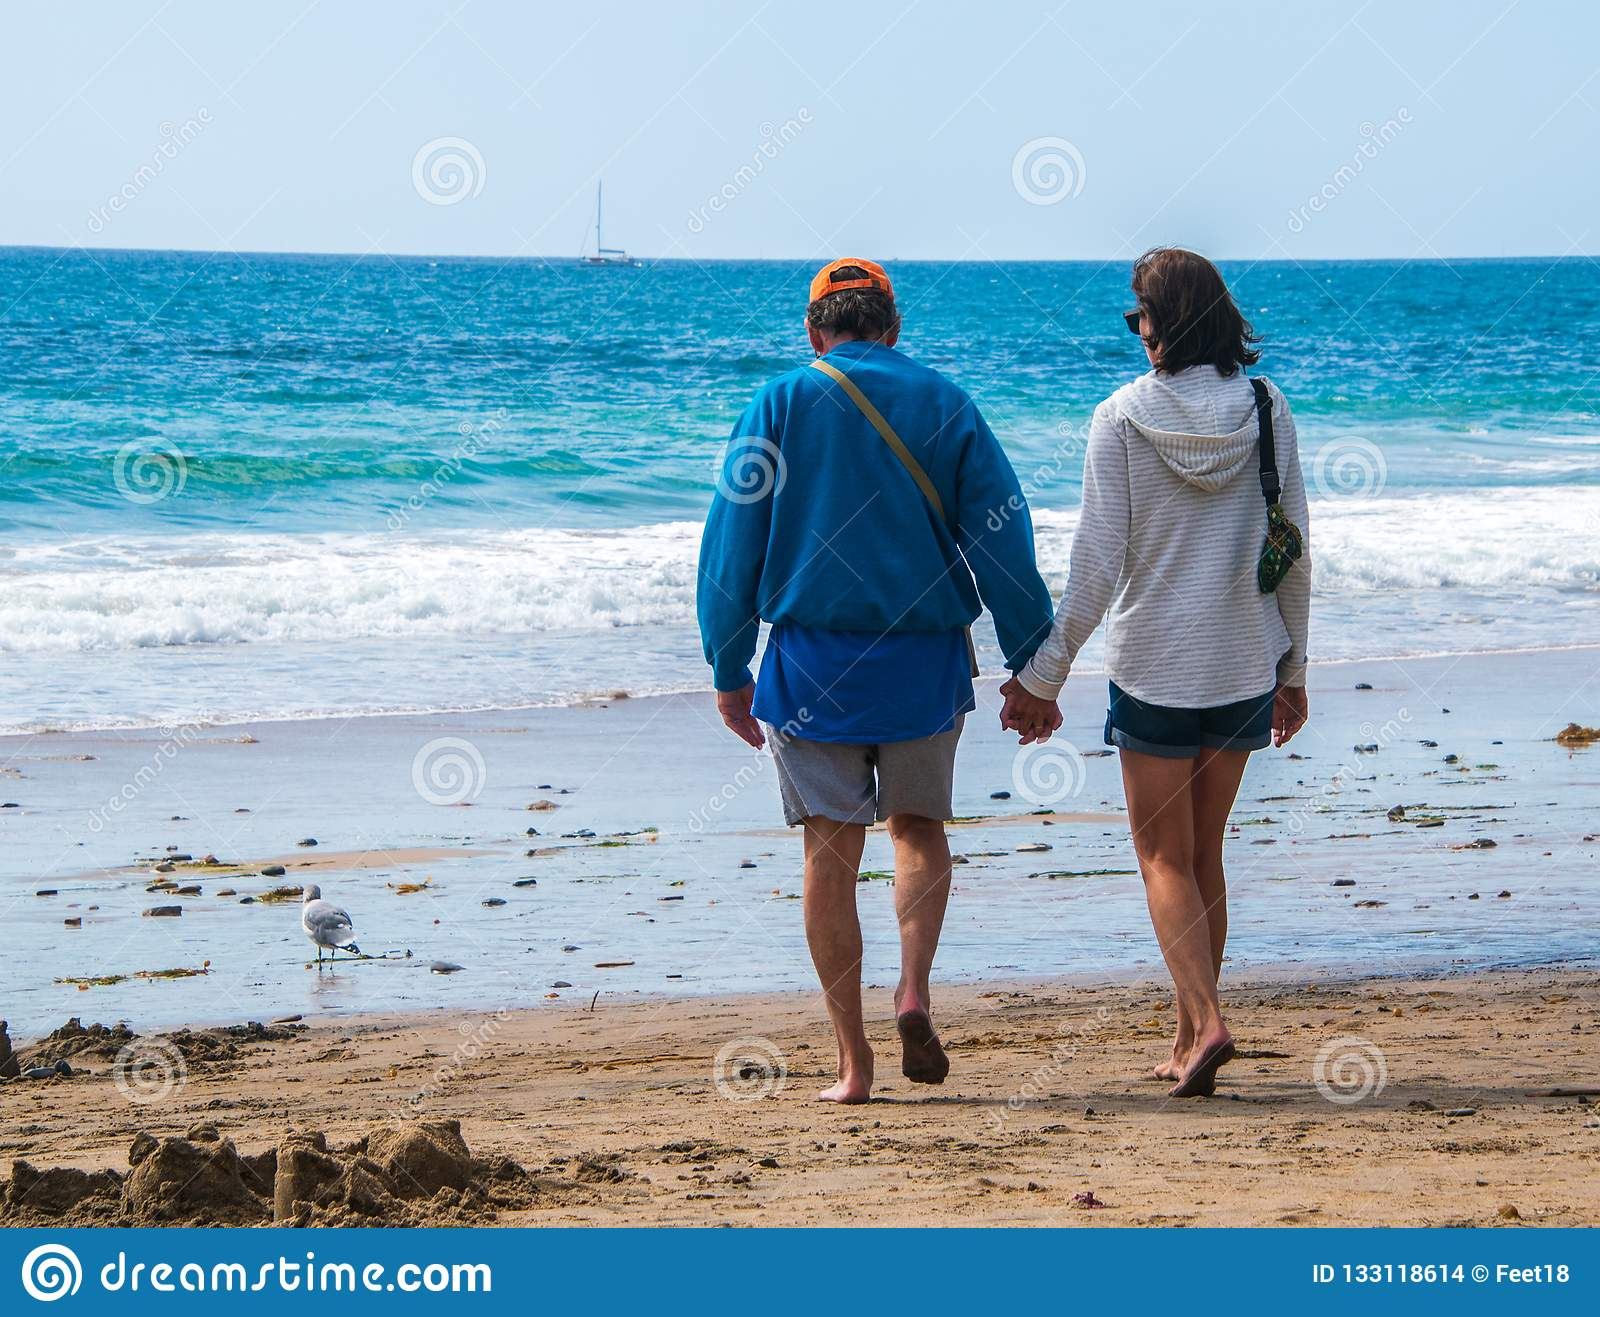 Senior citizen baby boomer male and female caucasian couple walking on the beach towards the ocean holding hands.